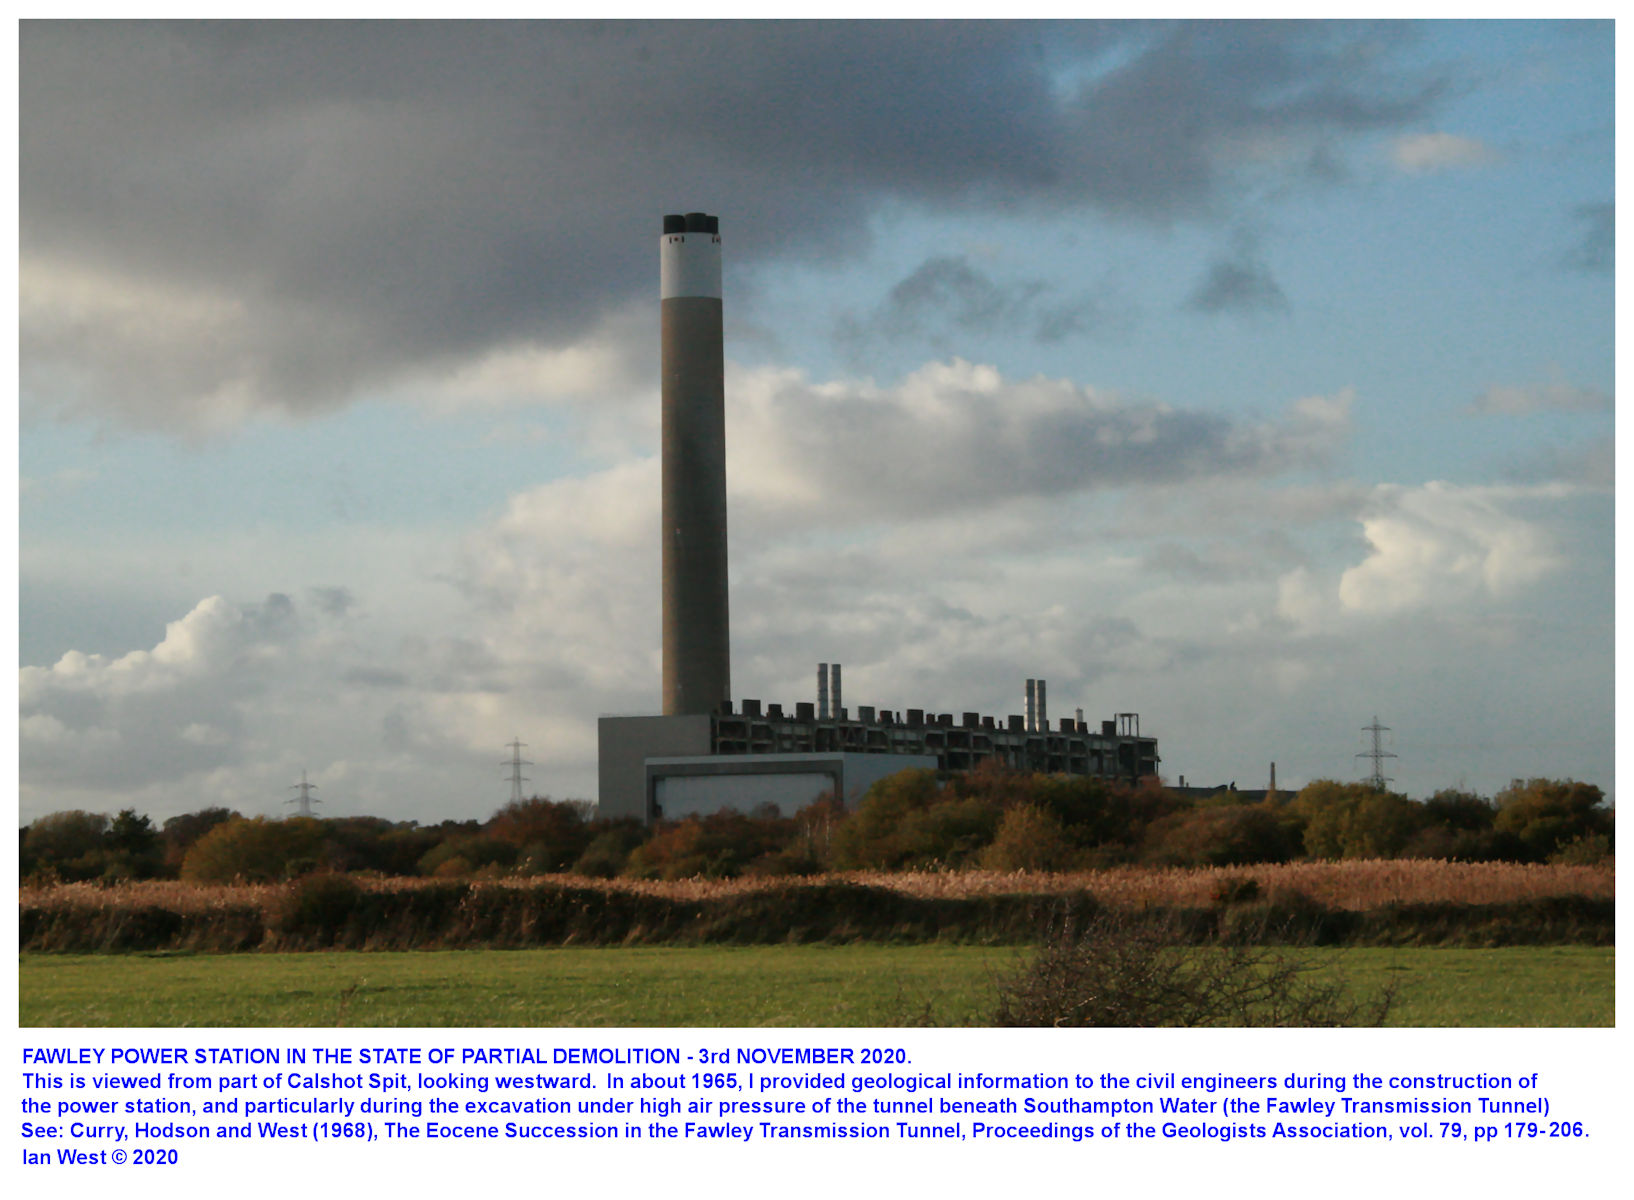 The Fawley Power Station, as seen here from the road down Calshot Spit on the 3rd November, 2020, is being prepared for demolition